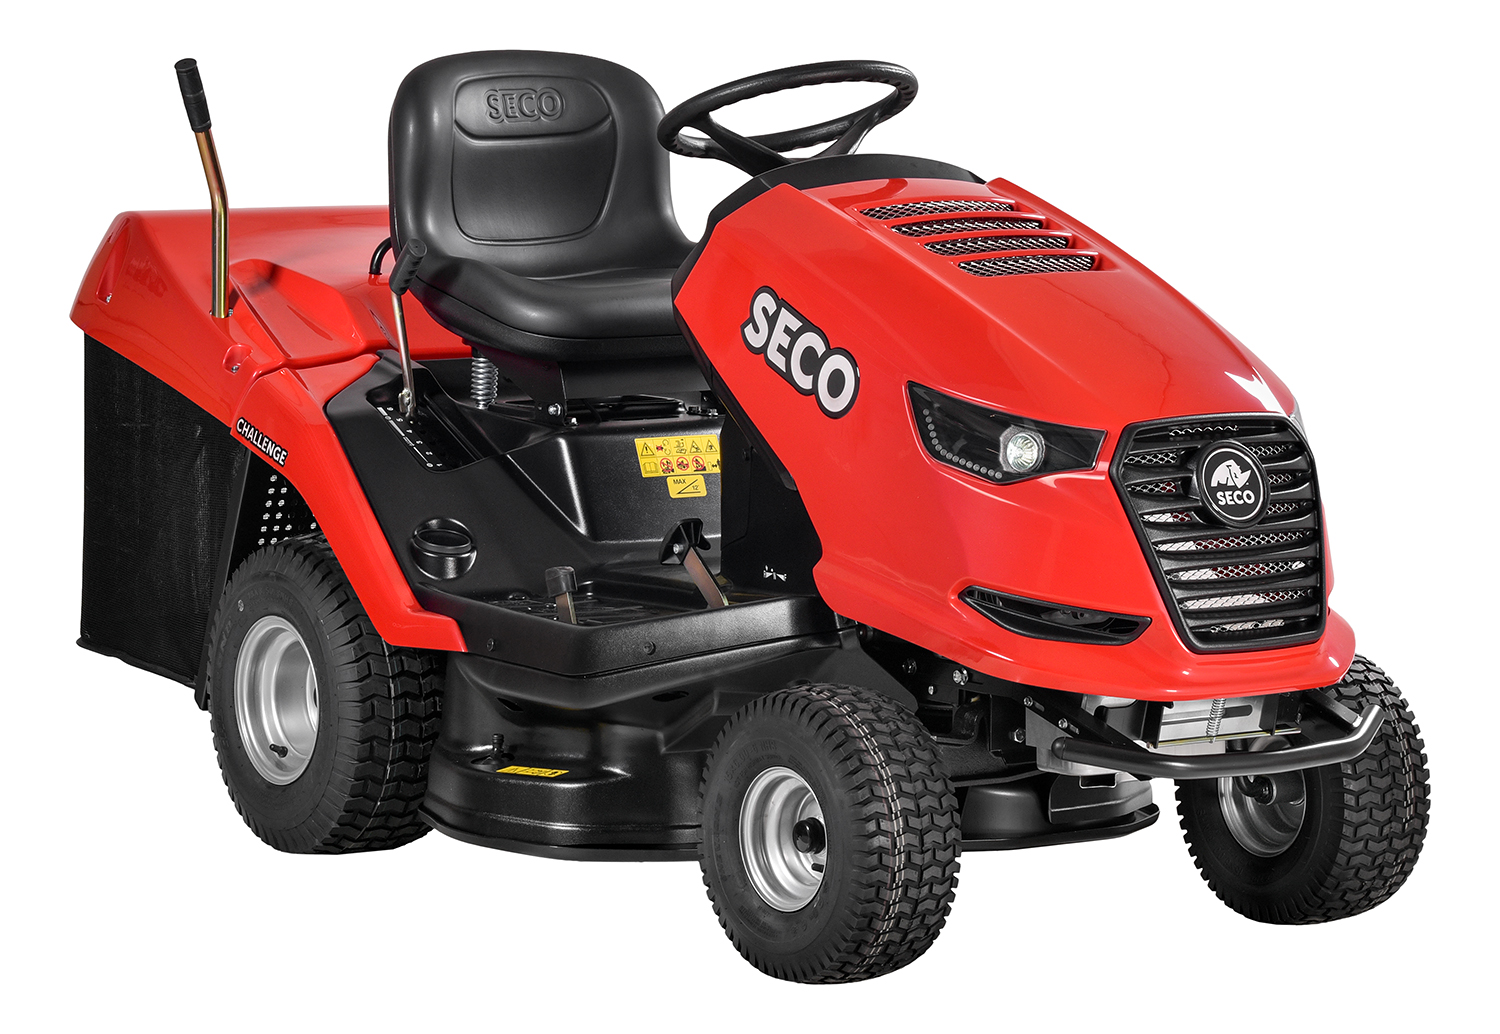 Seco Industries Challenge 7220 Intek